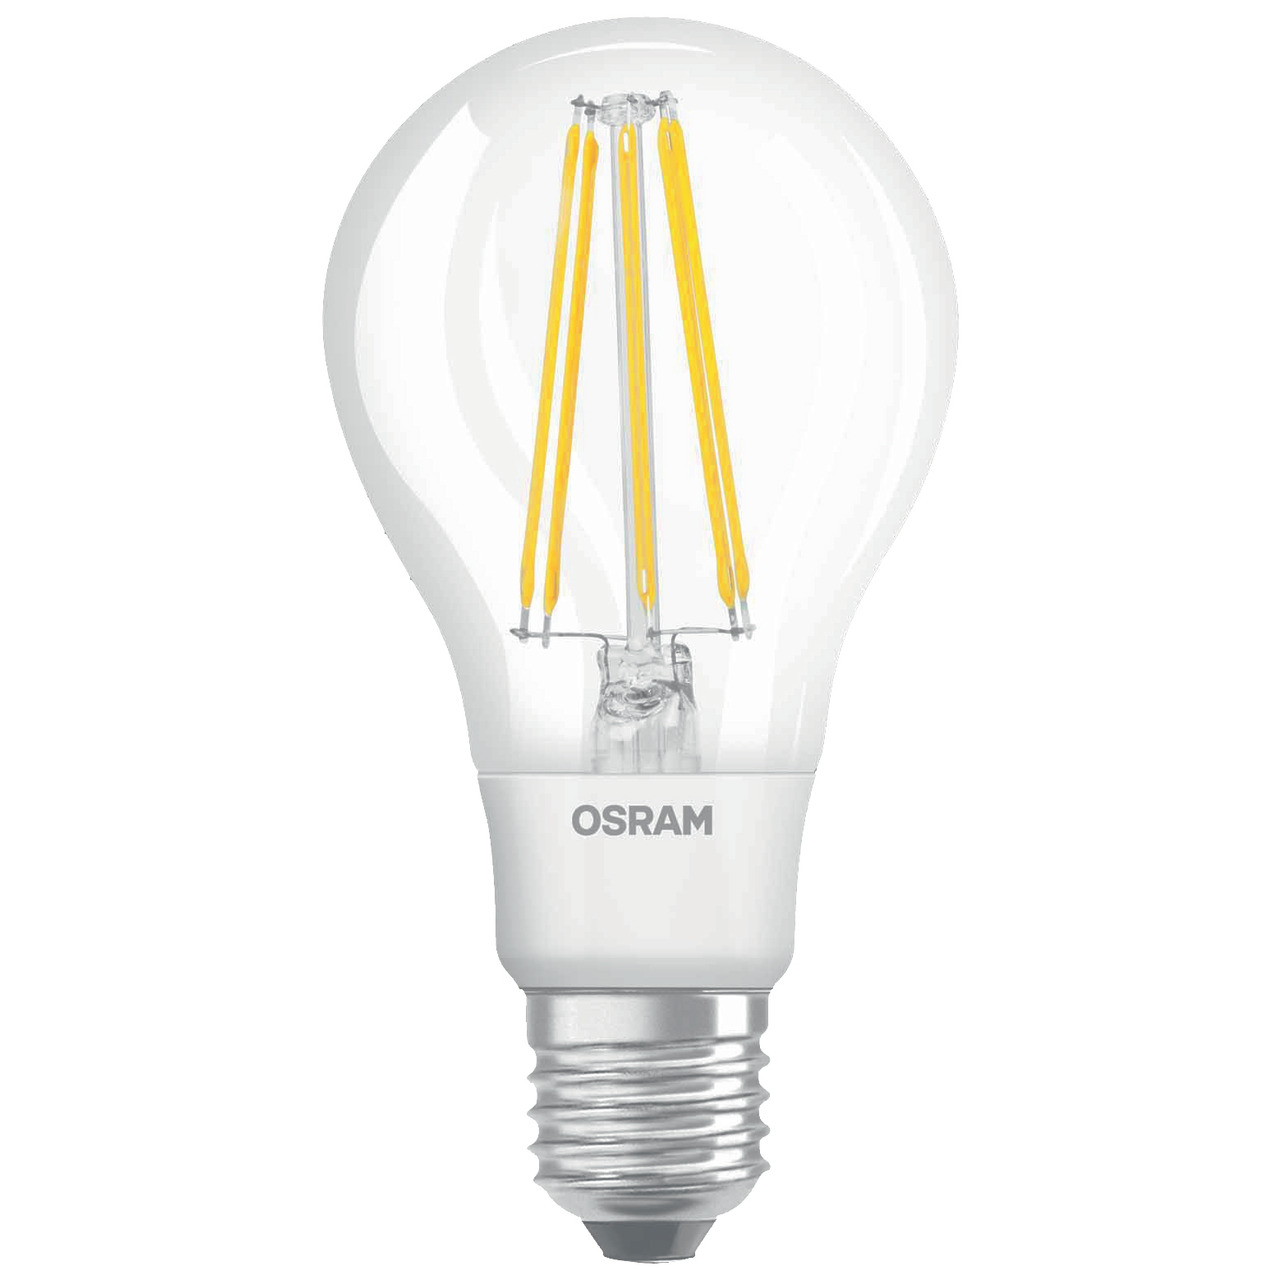 OSRAM LED RETRO Glass Bulb 11-W-LED-Lampe E27- klar